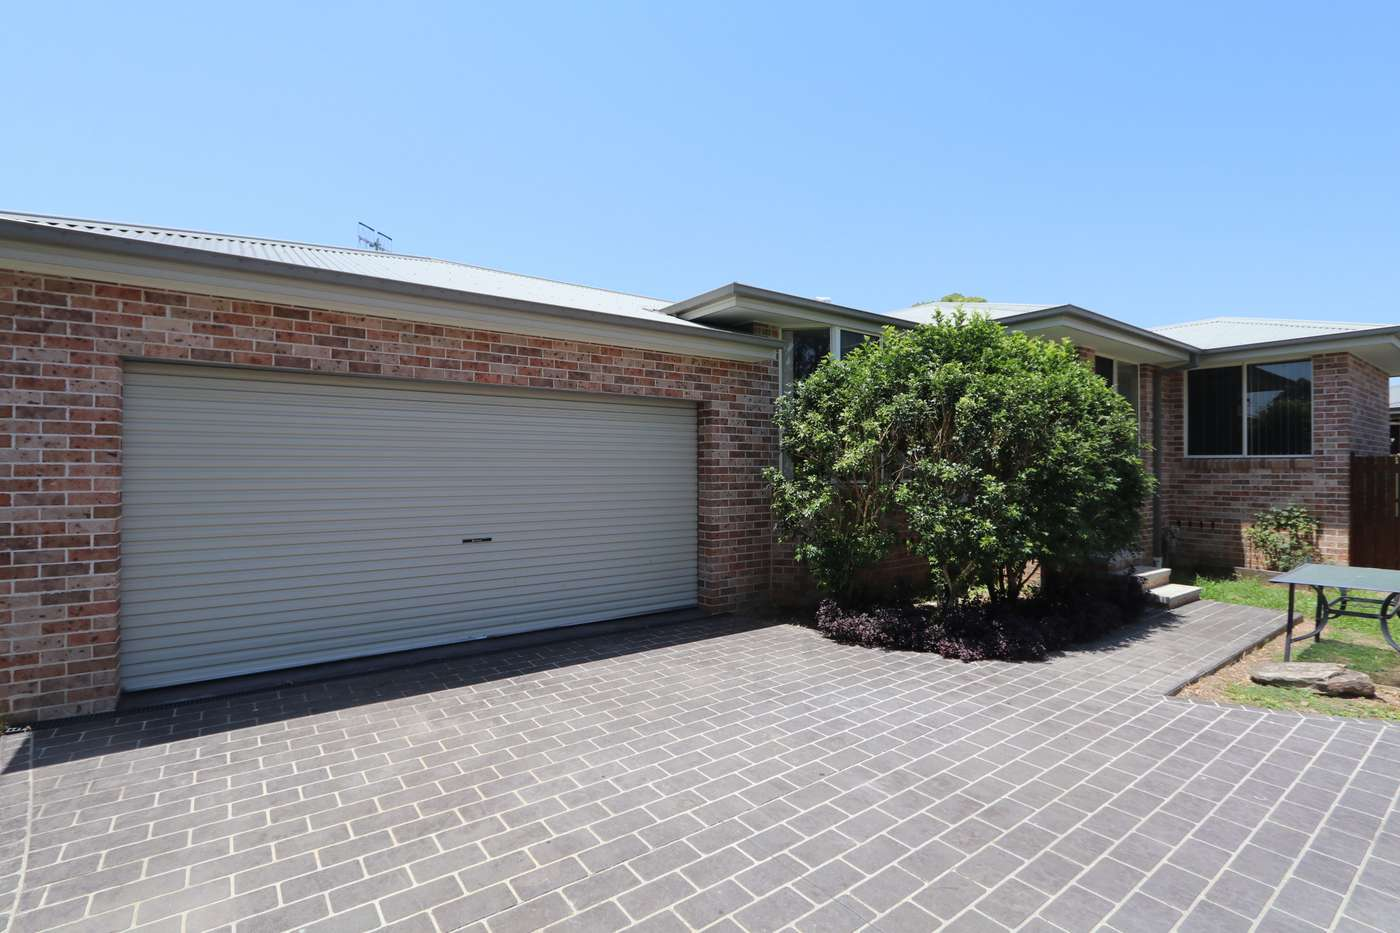 Main view of Homely house listing, 2/27A Leppington Street, Wyong, NSW 2259